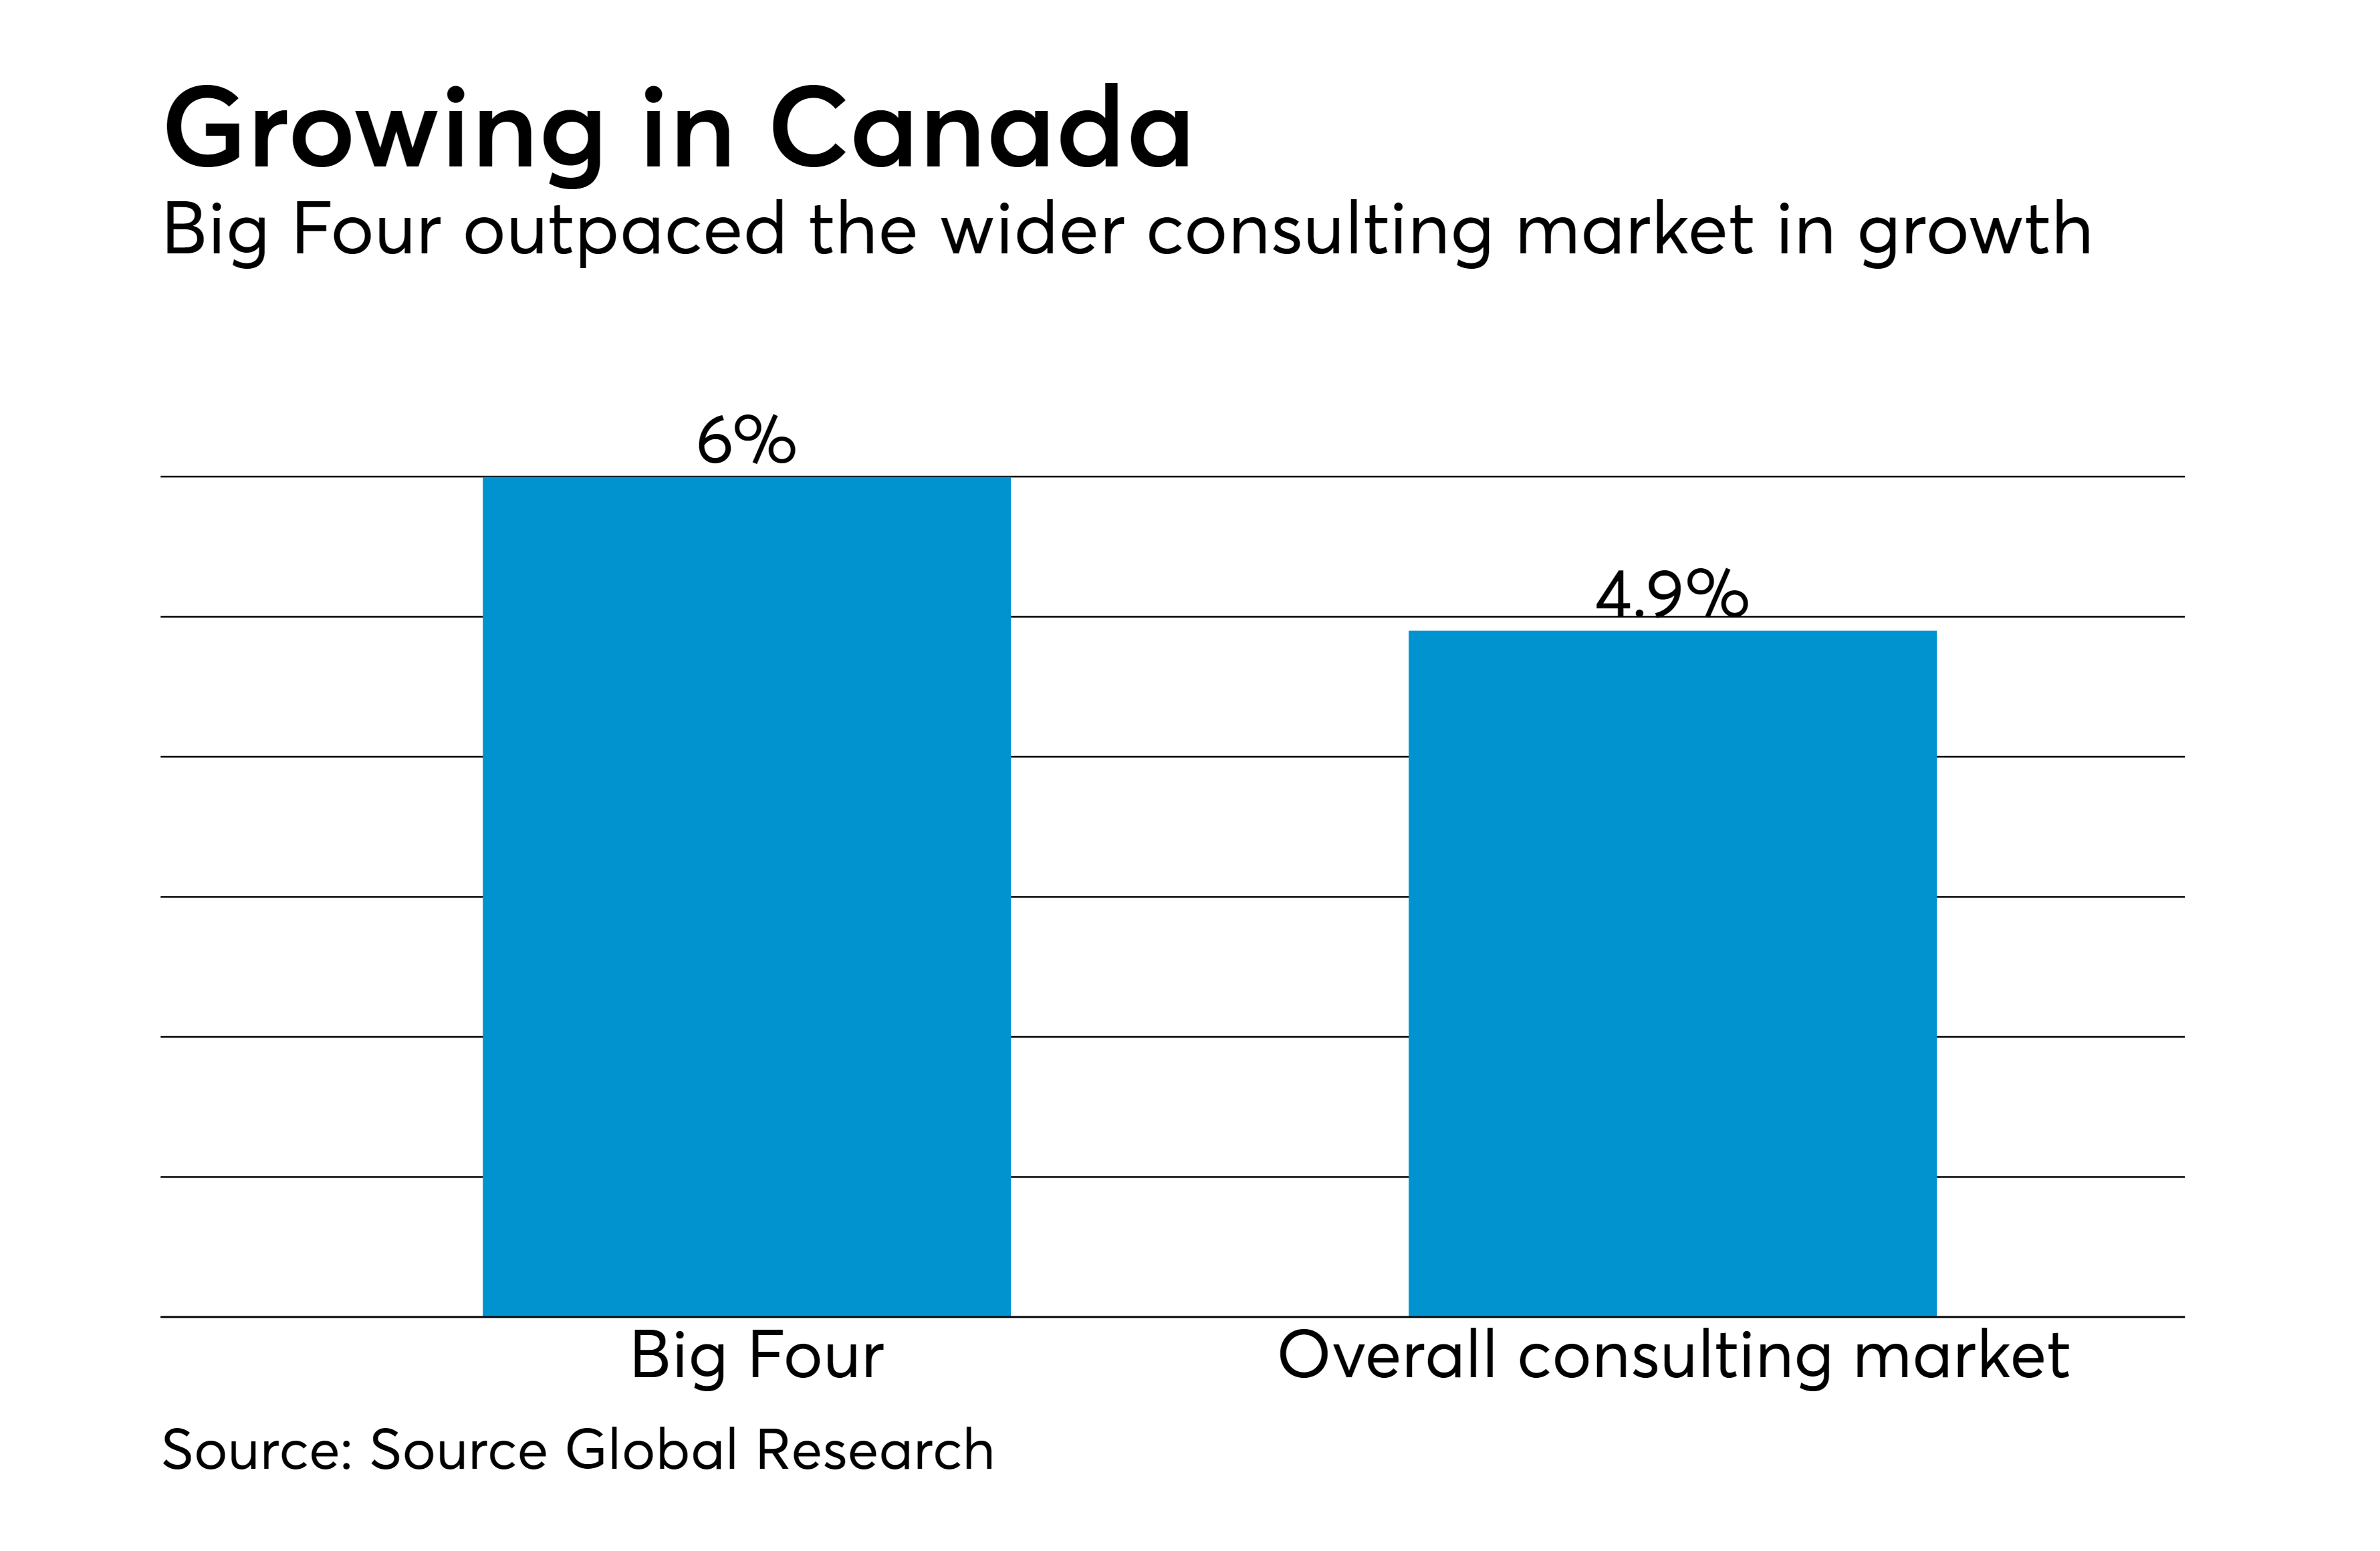 https://assets.sourcemedia.com/09/ac/265de41f465b9ad89b5964d0a3fc/at-062618-canadianconsultingrevenuegrowth.png